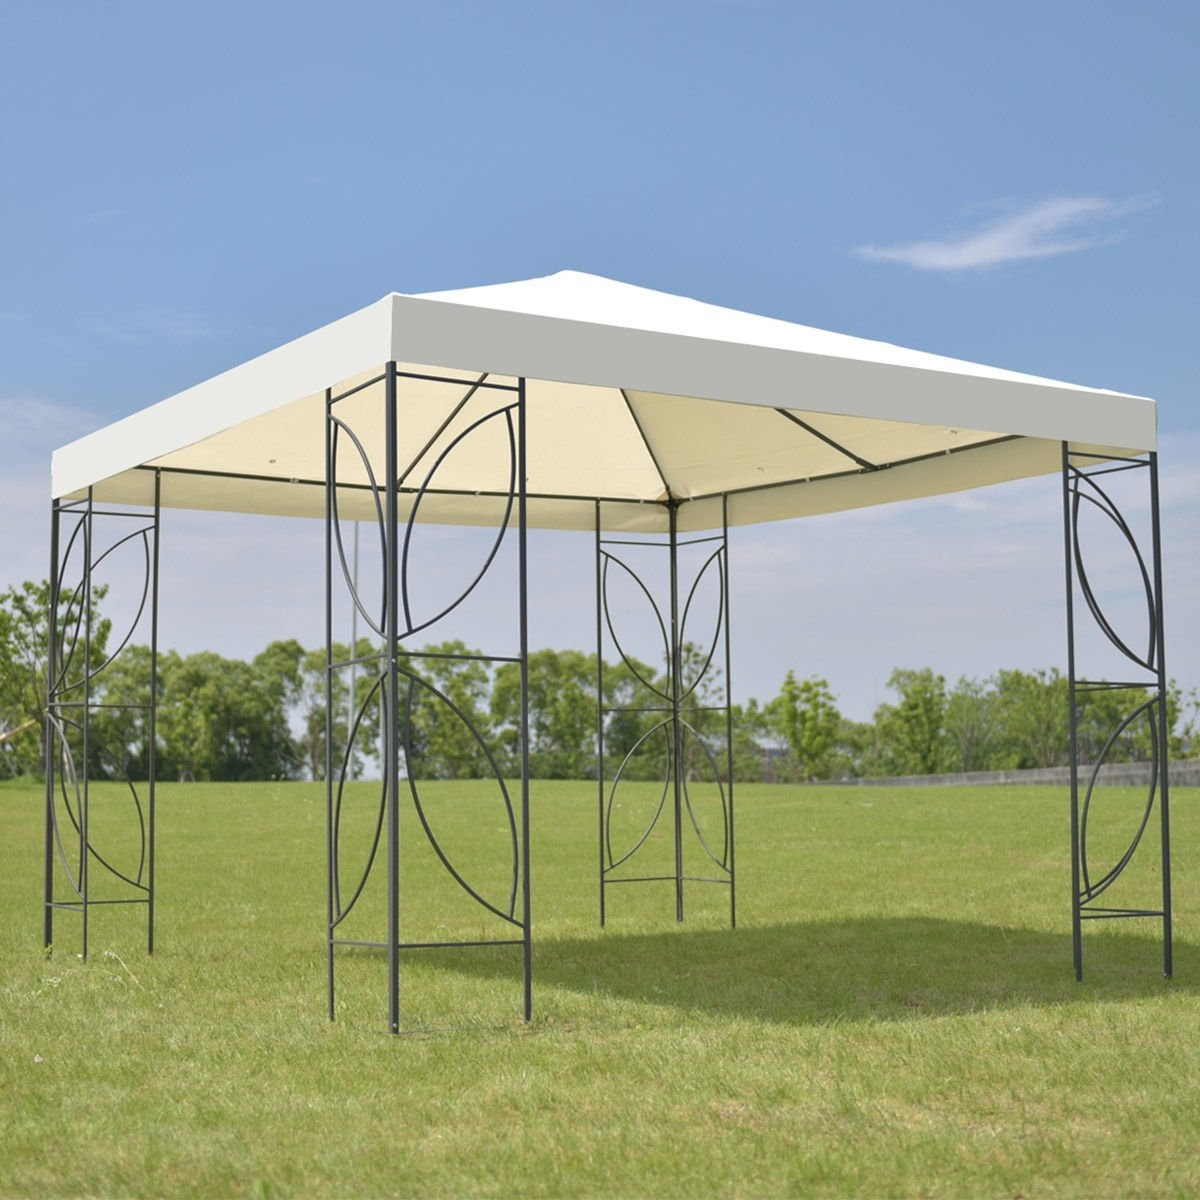 New MTN-G MTN-G Patio 10'x10' Square Gazebo Canopy Tent Steel Frame Shelter Awning W Beige Cover by MTN Gearsmith